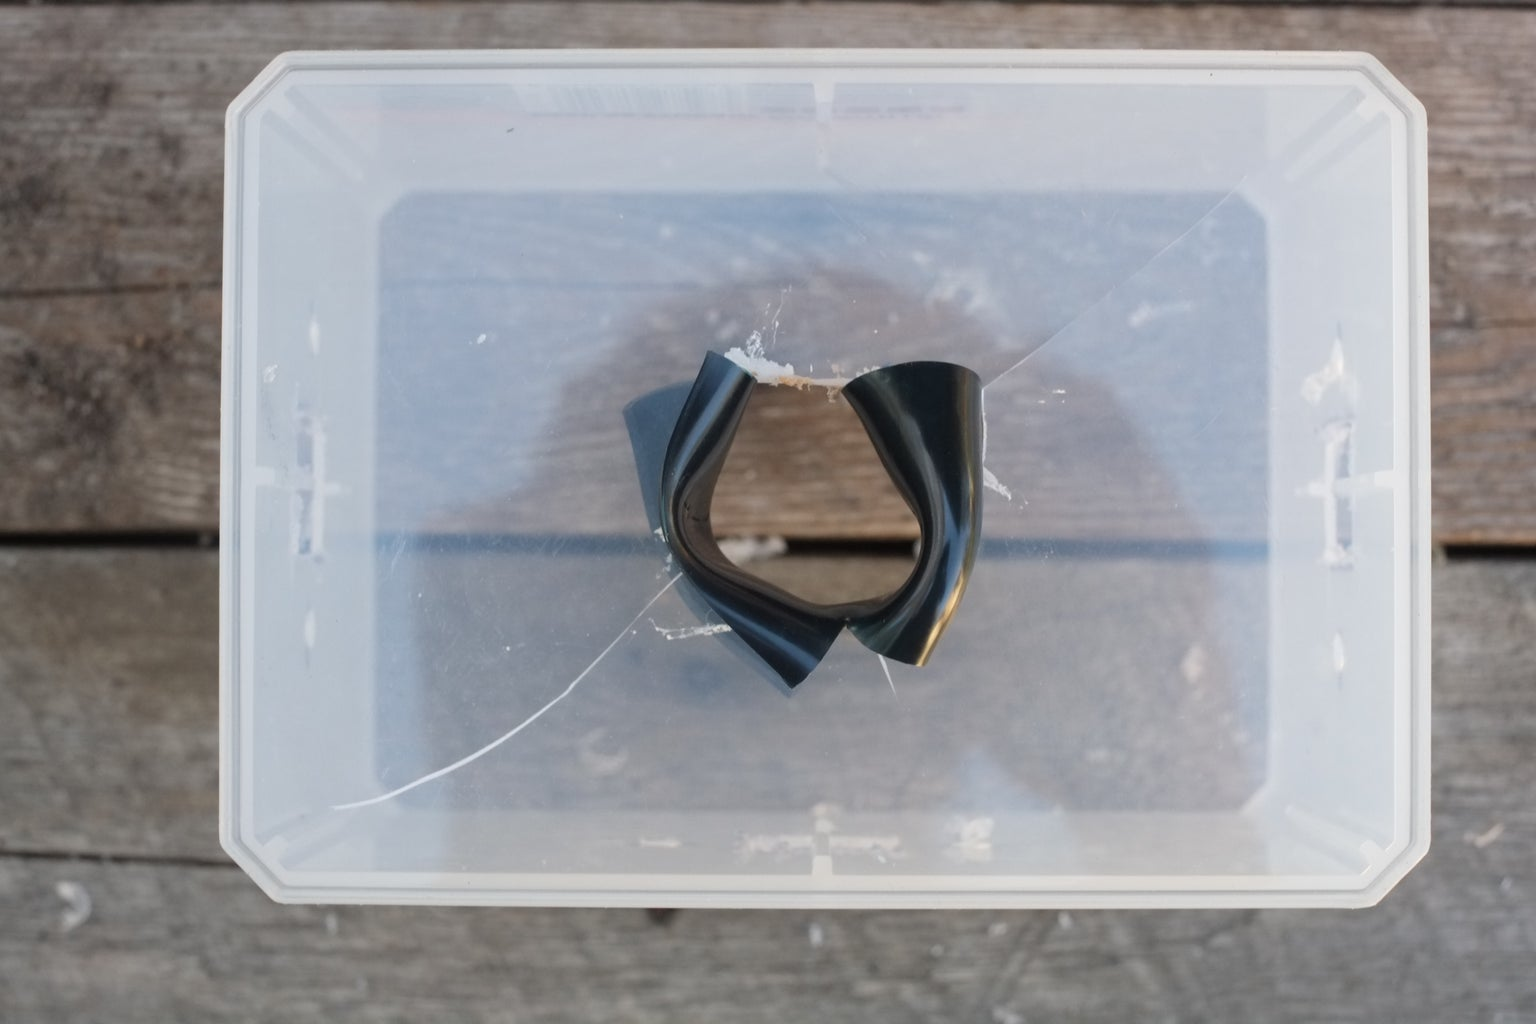 Preparing the Junction Box: Making a Hole for the Inlet